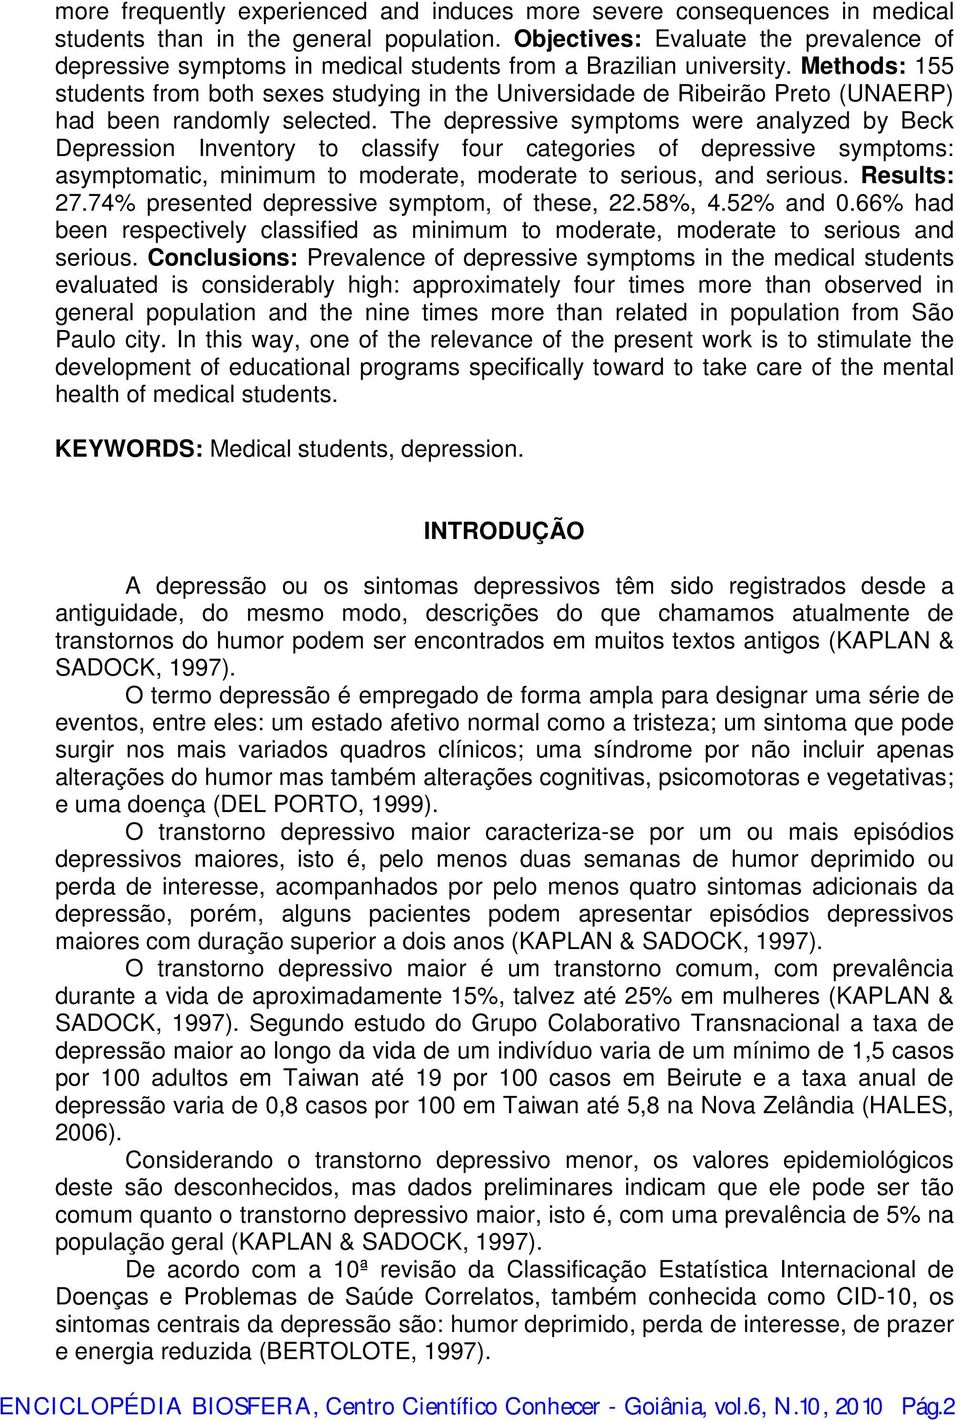 Methods: 155 students from both sexes studying in the Universidade de Ribeirão Preto (UNAERP) had been randomly selected.